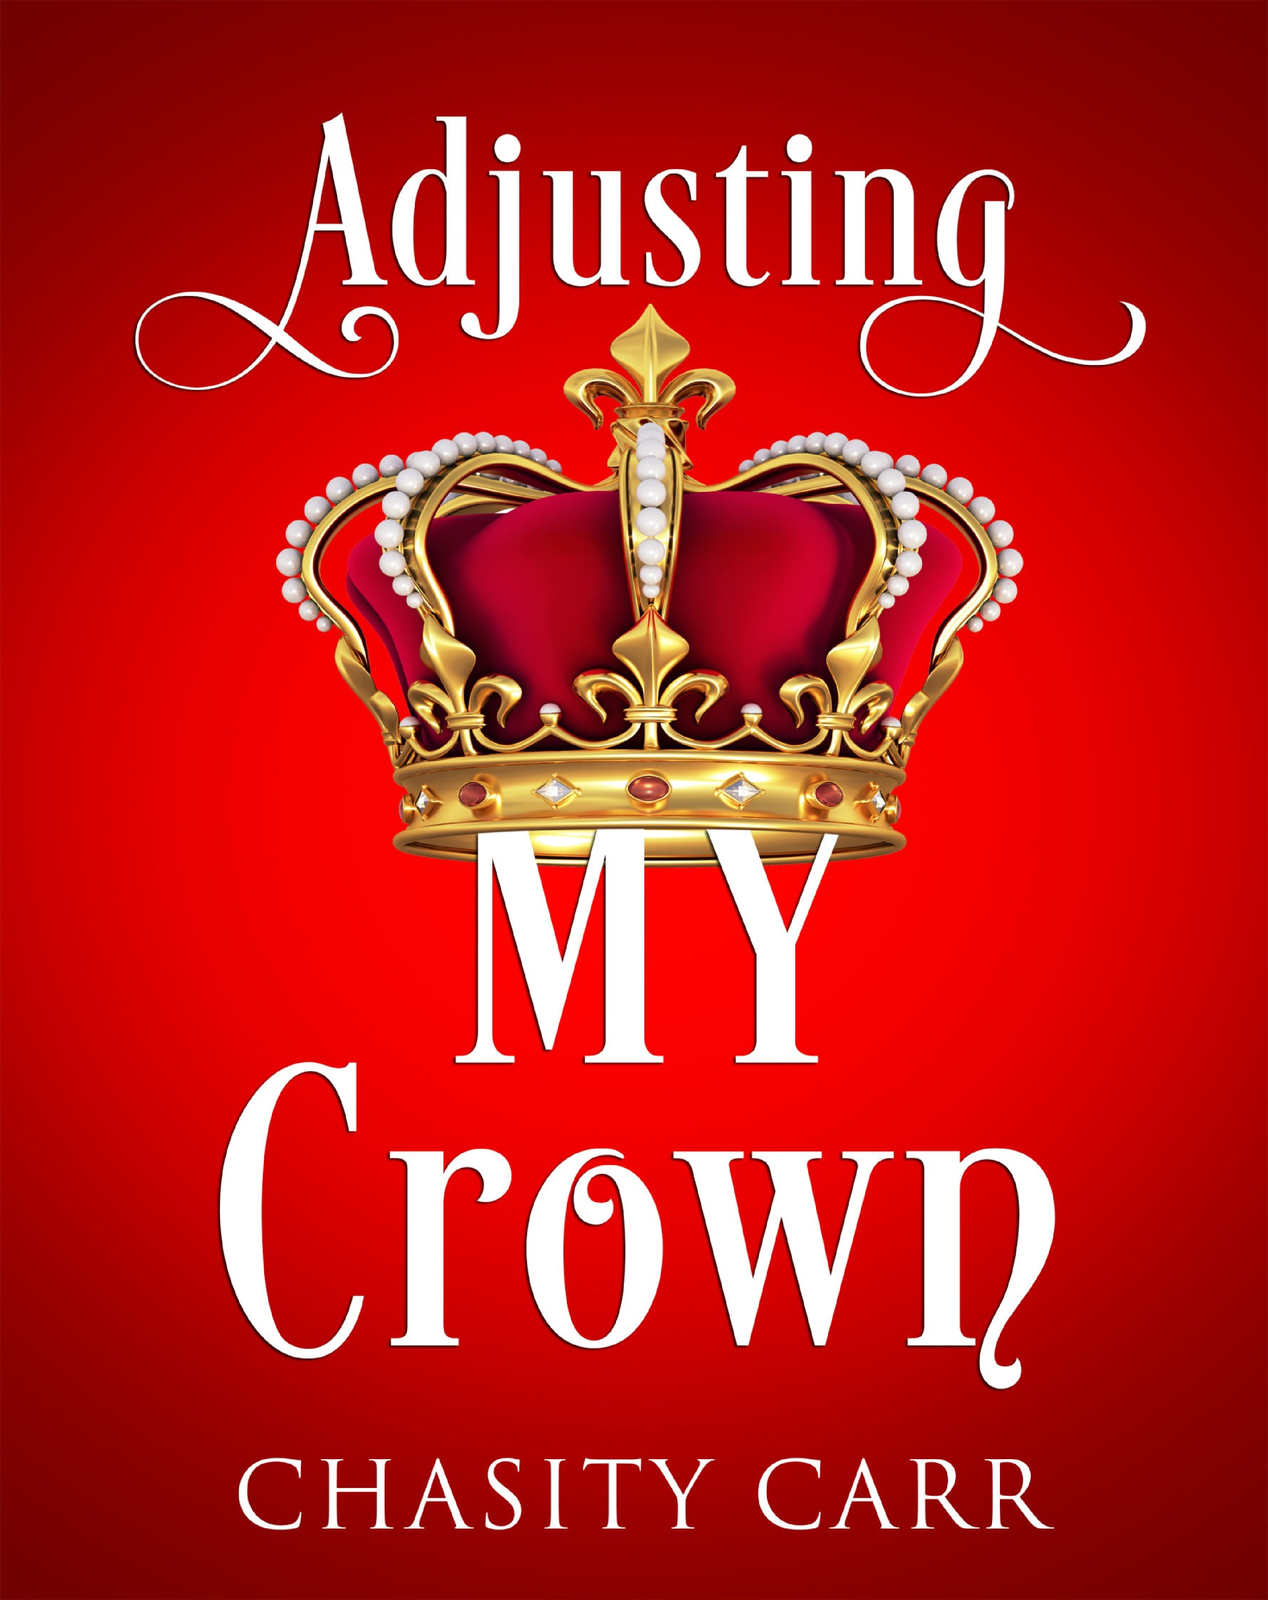 Editar Libros En Amazon Adjusting My Crown Ebook De Chasity Carr Libros De Blurb